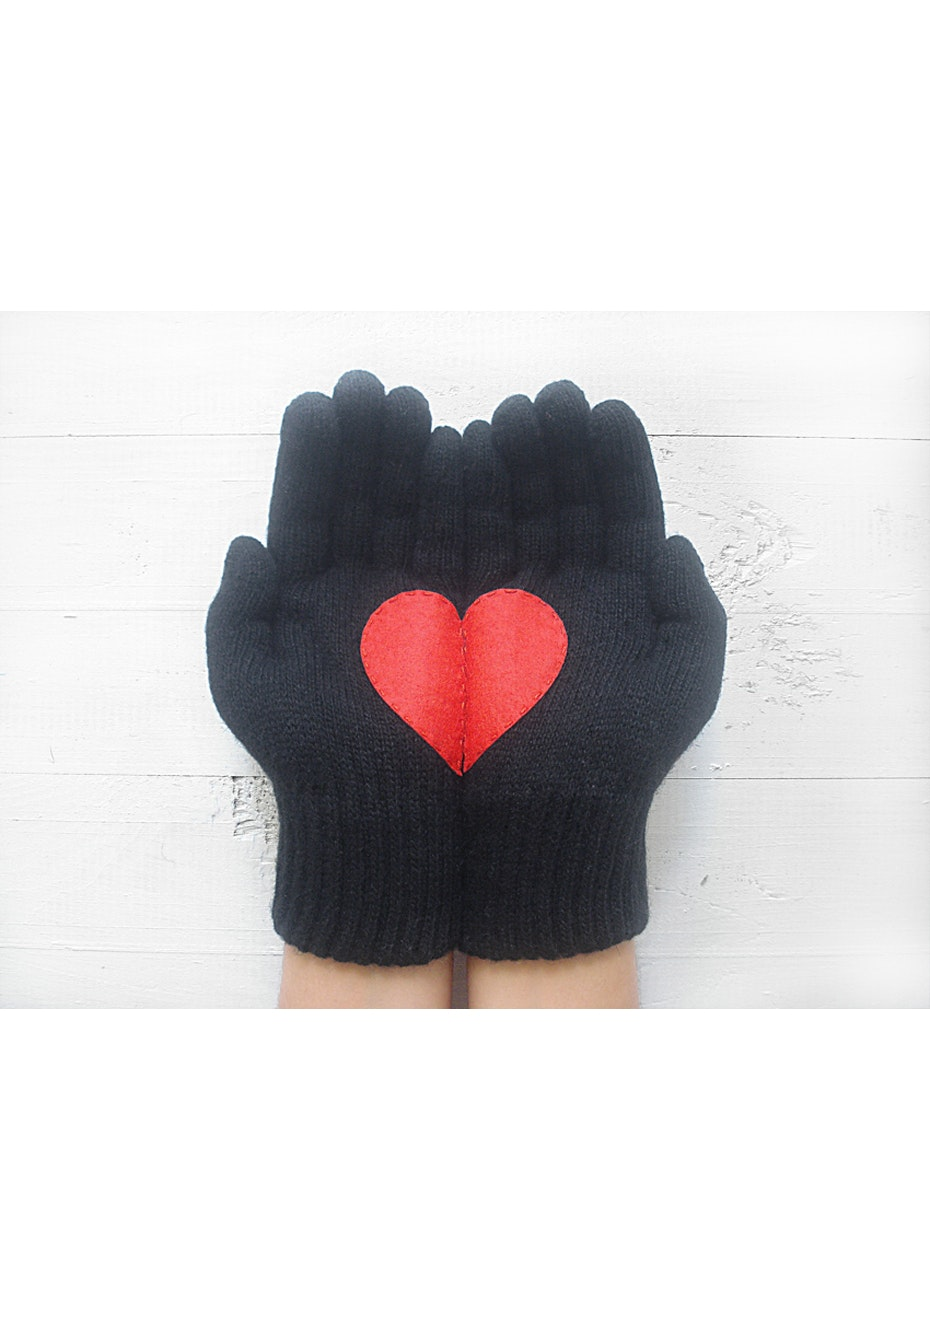 Heart Gloves - Black/Red